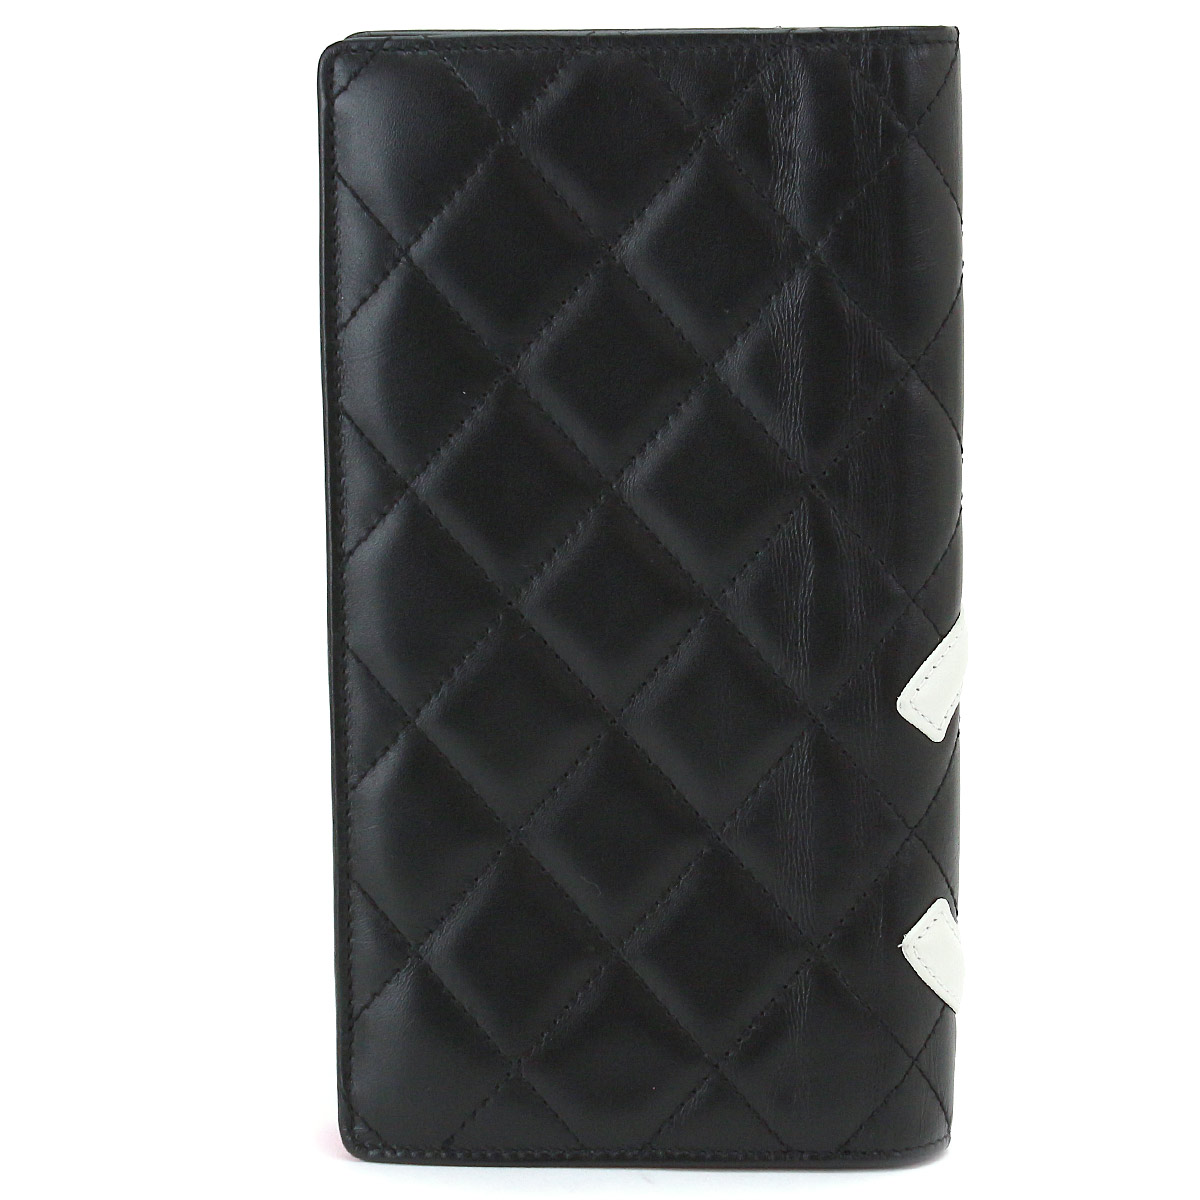 81e9082bbacbdb Chanel CHANEL Cambon line folio long wallet leather black white A26717